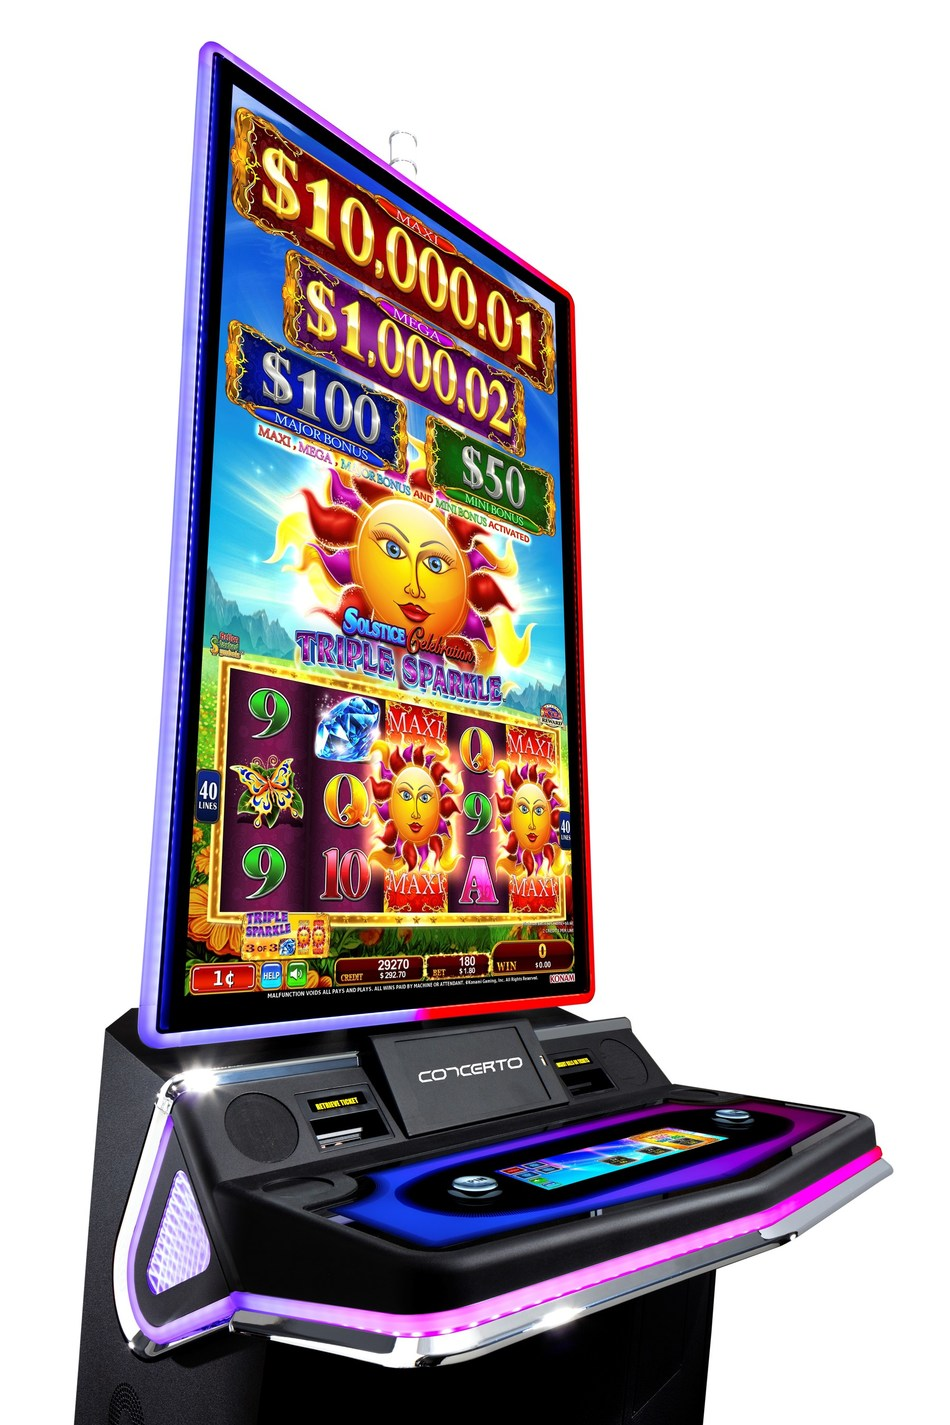 Top casino gaming developer emphasizes creativity and enduring entertainment with its newest casino games and systems innovations